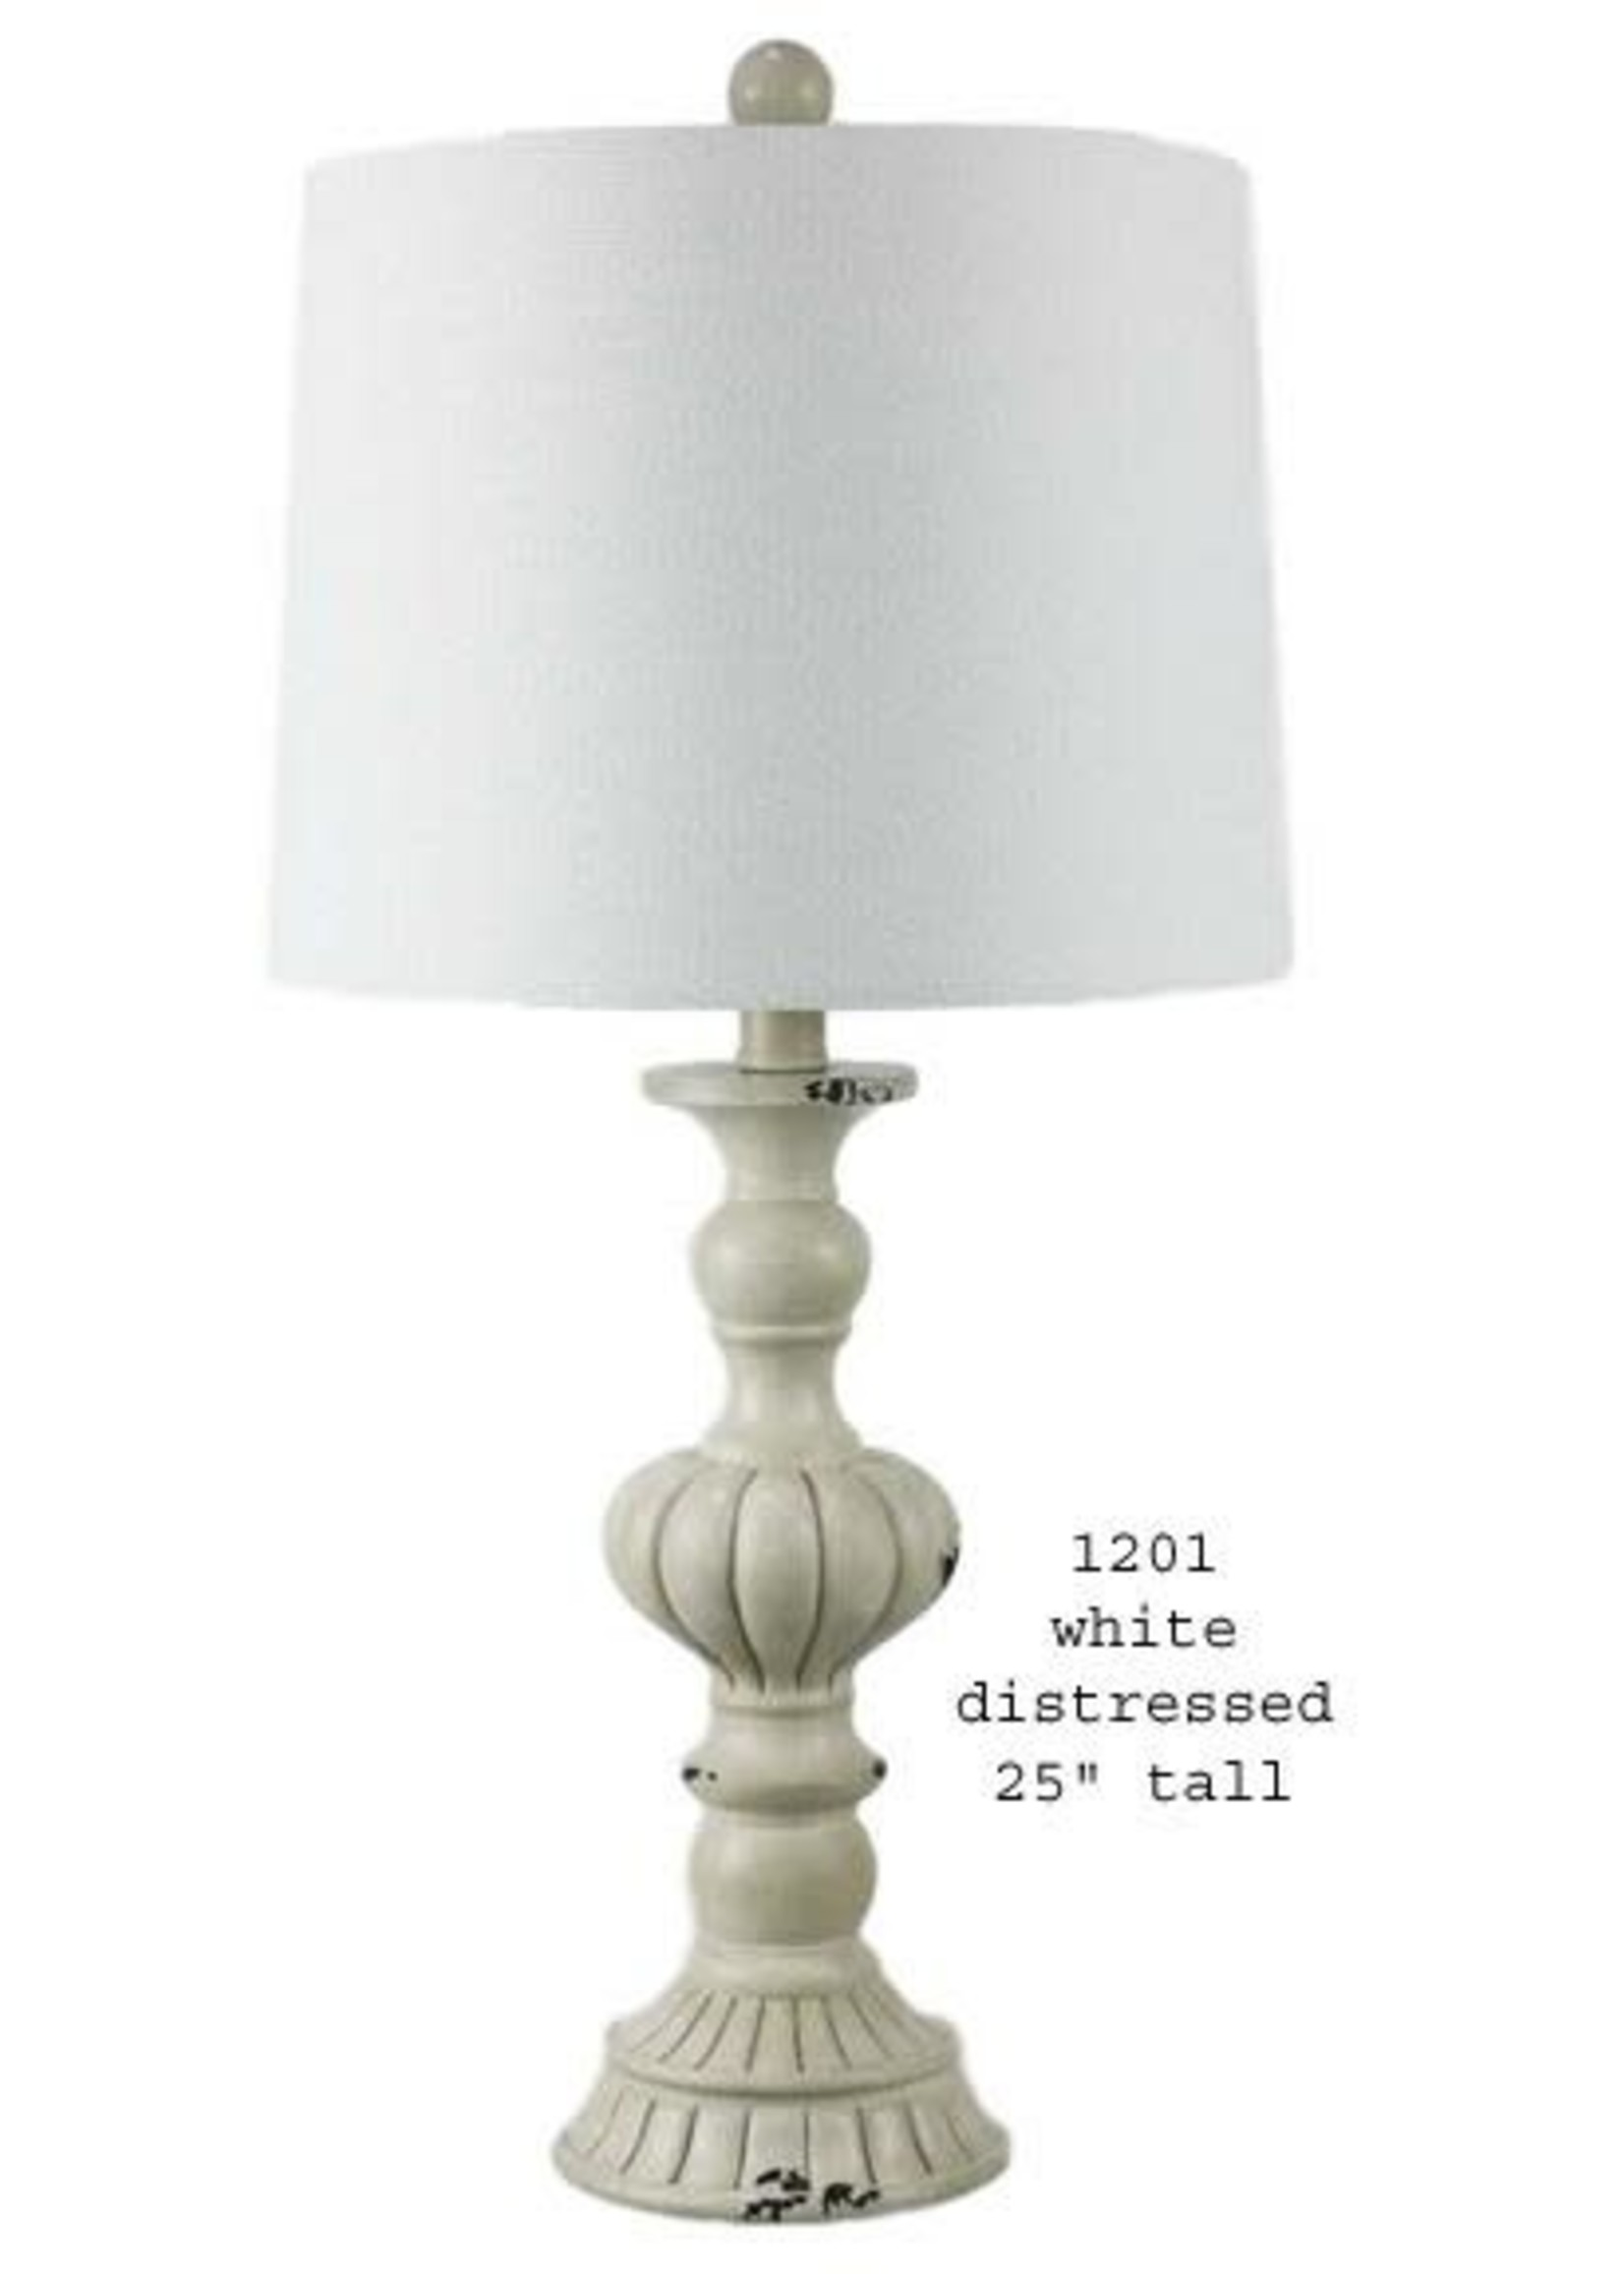 H&H LAMP TABLE LAMP IN WHITE DISTRESSED